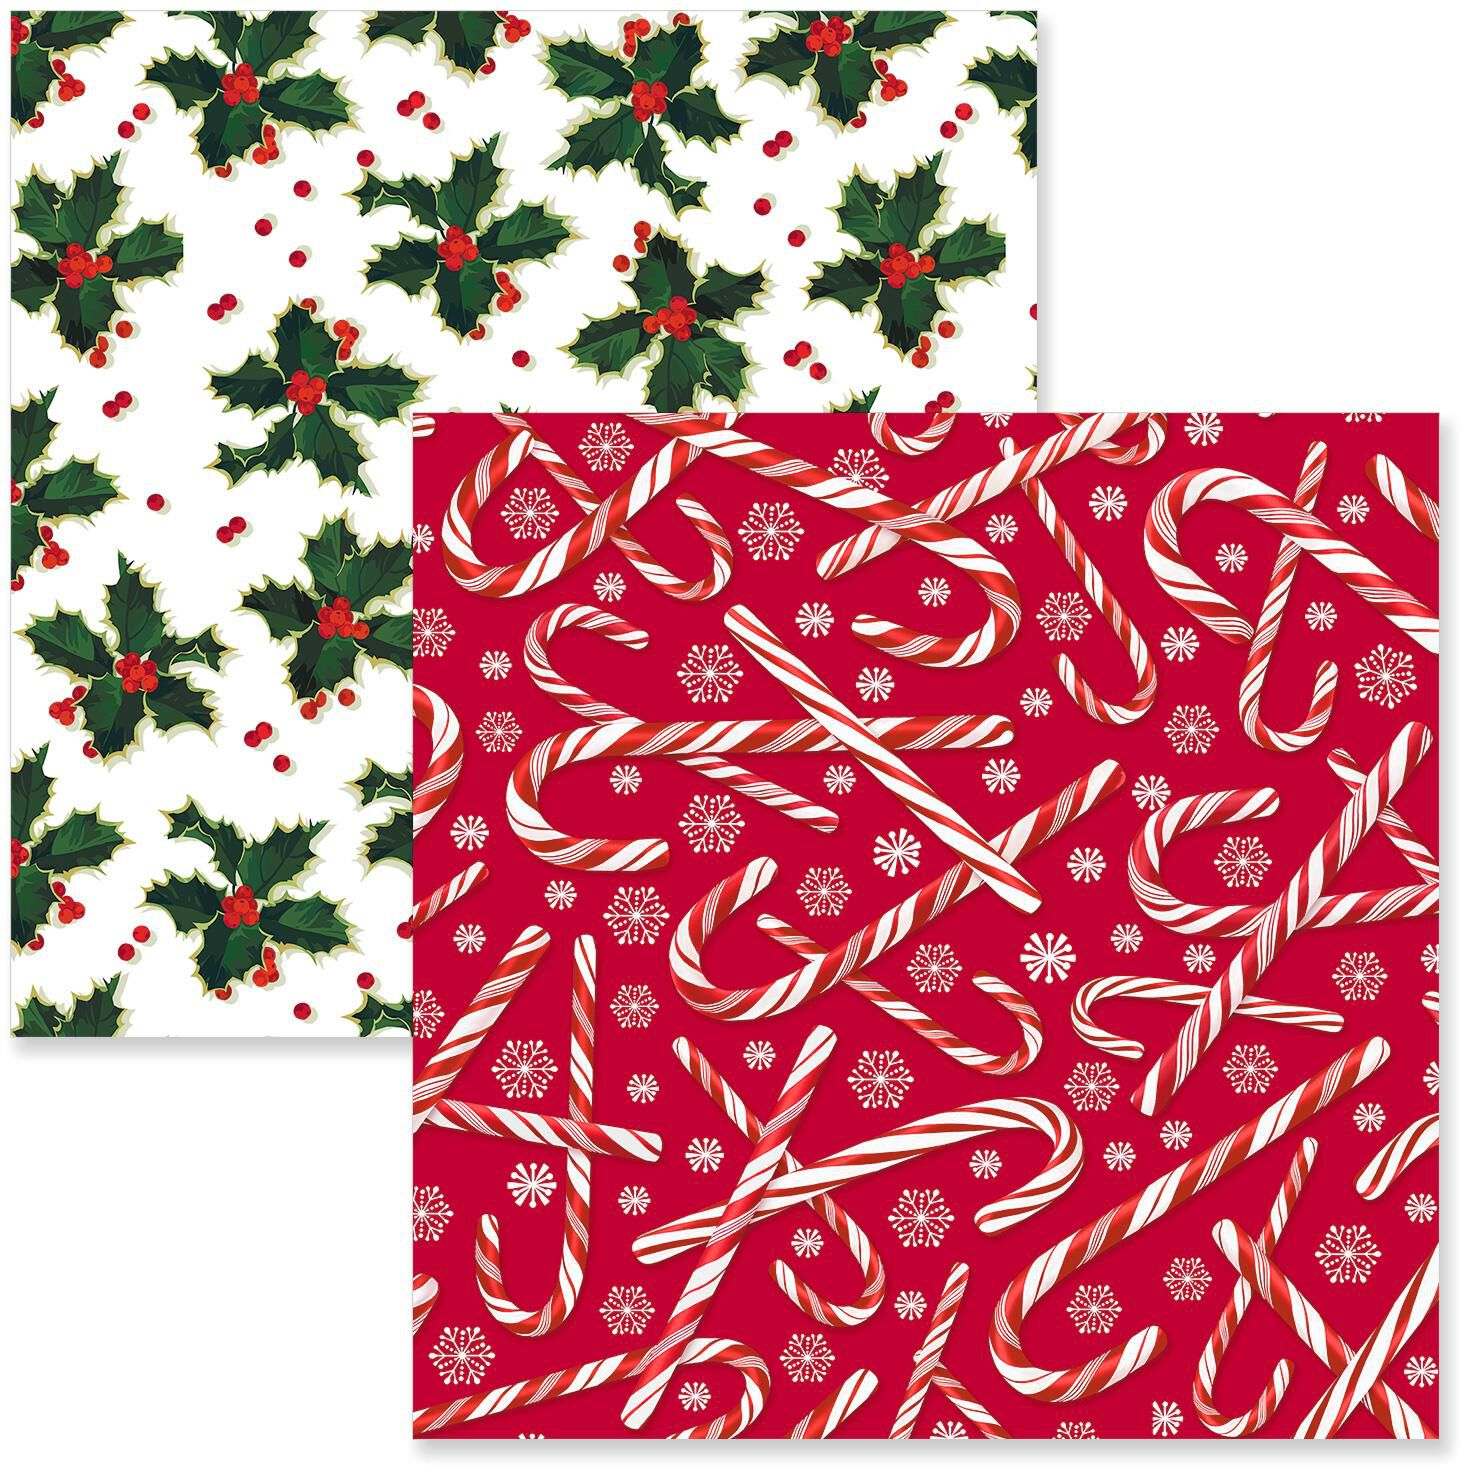 candy canesholly christmas wrapping paper rolls pack of 2 wrapping paper hallmark - Pink Christmas Wrapping Paper